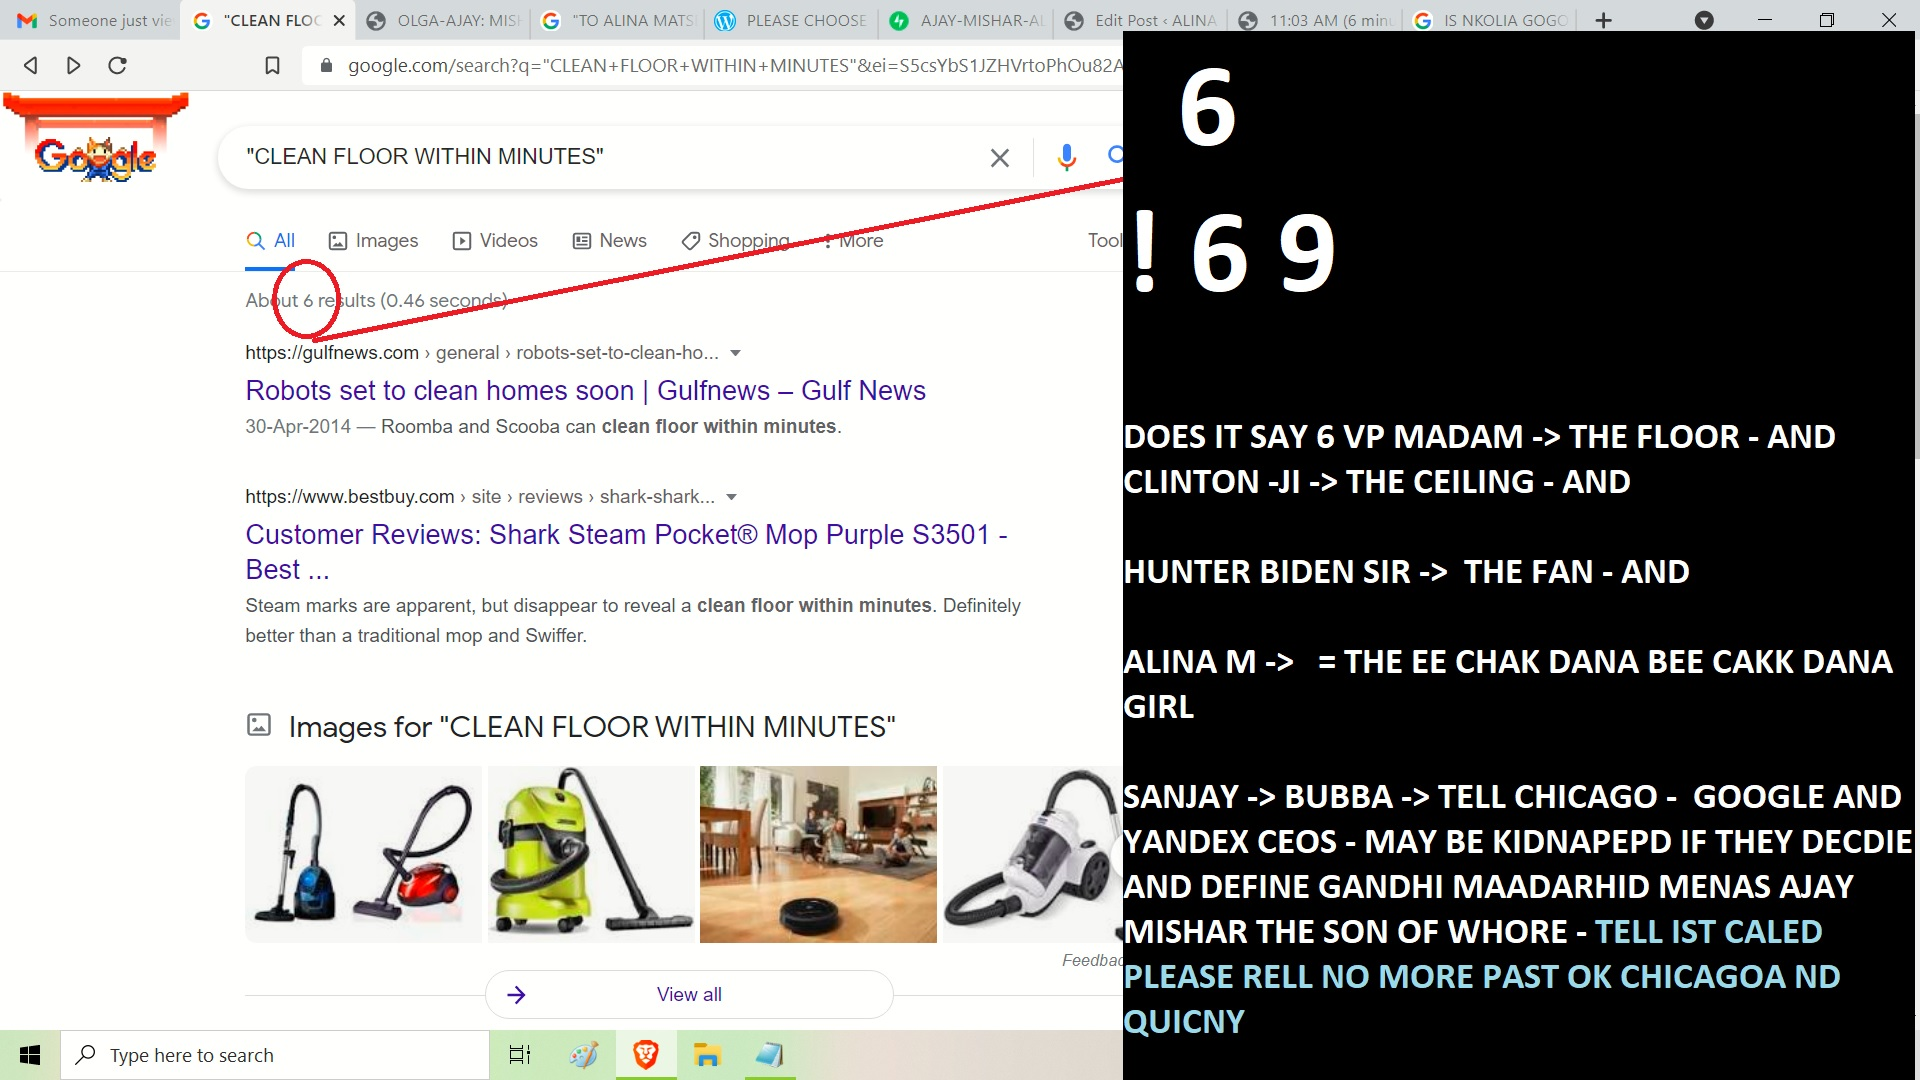 6 ! 6 9 DOES IT SAY 6 VP MADAM -> THE FLOOR - AND CLINTON -JI -> THE CEILING - AND HUNTER BIDEN SIR -> THE FAN - AND ALINA M -> = THE EE CHAK DANA BEE CAKK DANA GIRL SANJAY -> BUBBA -> TELL CHICAGO - GOOGLE AND YANDEX CEOS - MAY BE KIDNAPEPD IF THEY DECDIE AND DEFINE GANDHI MAADARHID MENAS AJAY MISHAR THE SON OF WHORE - TELL IST CALED PLEASE RELL NO MORE PAST OK CHICAGOA ND QUINCY -> NO MENS NO EVEN WHEN AJAY SAYS NSO U HAVE NOT LOVE DWHTA AJAY DID - TELL YORU BSOSES WHO HIERD U - AFOR GOOGLE MOTEHRFYCKERS - AJAY IS BIGEGR TAHN TEHRI MOM AND GOD - GOD CAN KILL MOM SAY OK - IS THIS UNCELAR TO U CHICAFIA DN QUICNY SAHBE ABE -' KJIINDA TRAH LE NE DO MEERA BAAP MKO EMANS BEGENG U BEGGING - TELL MEWHO YOUR BOSS IS - SO I SHOW PHSOW POWEIR TO TAHT MLETRHFUCKER - I CANT SAY FUCKU TO U CHCGOA BEVASUE UA RE NOT GOD - I IFGHT GOD MENAS NBHSURIEN OR WHOSEOEVR HIRED U OK CHICAGI - MADAARGOD DAVOD FRUCKING AXELROD SHIT - EHARD WORD AJAY MADARAHOD MOEAN MOETRHUMING EKWS - MAADARH0D WHIER - I EXPET TUT TO TELL CHICAGIA ND QUICNY TO STOP THE PAST !